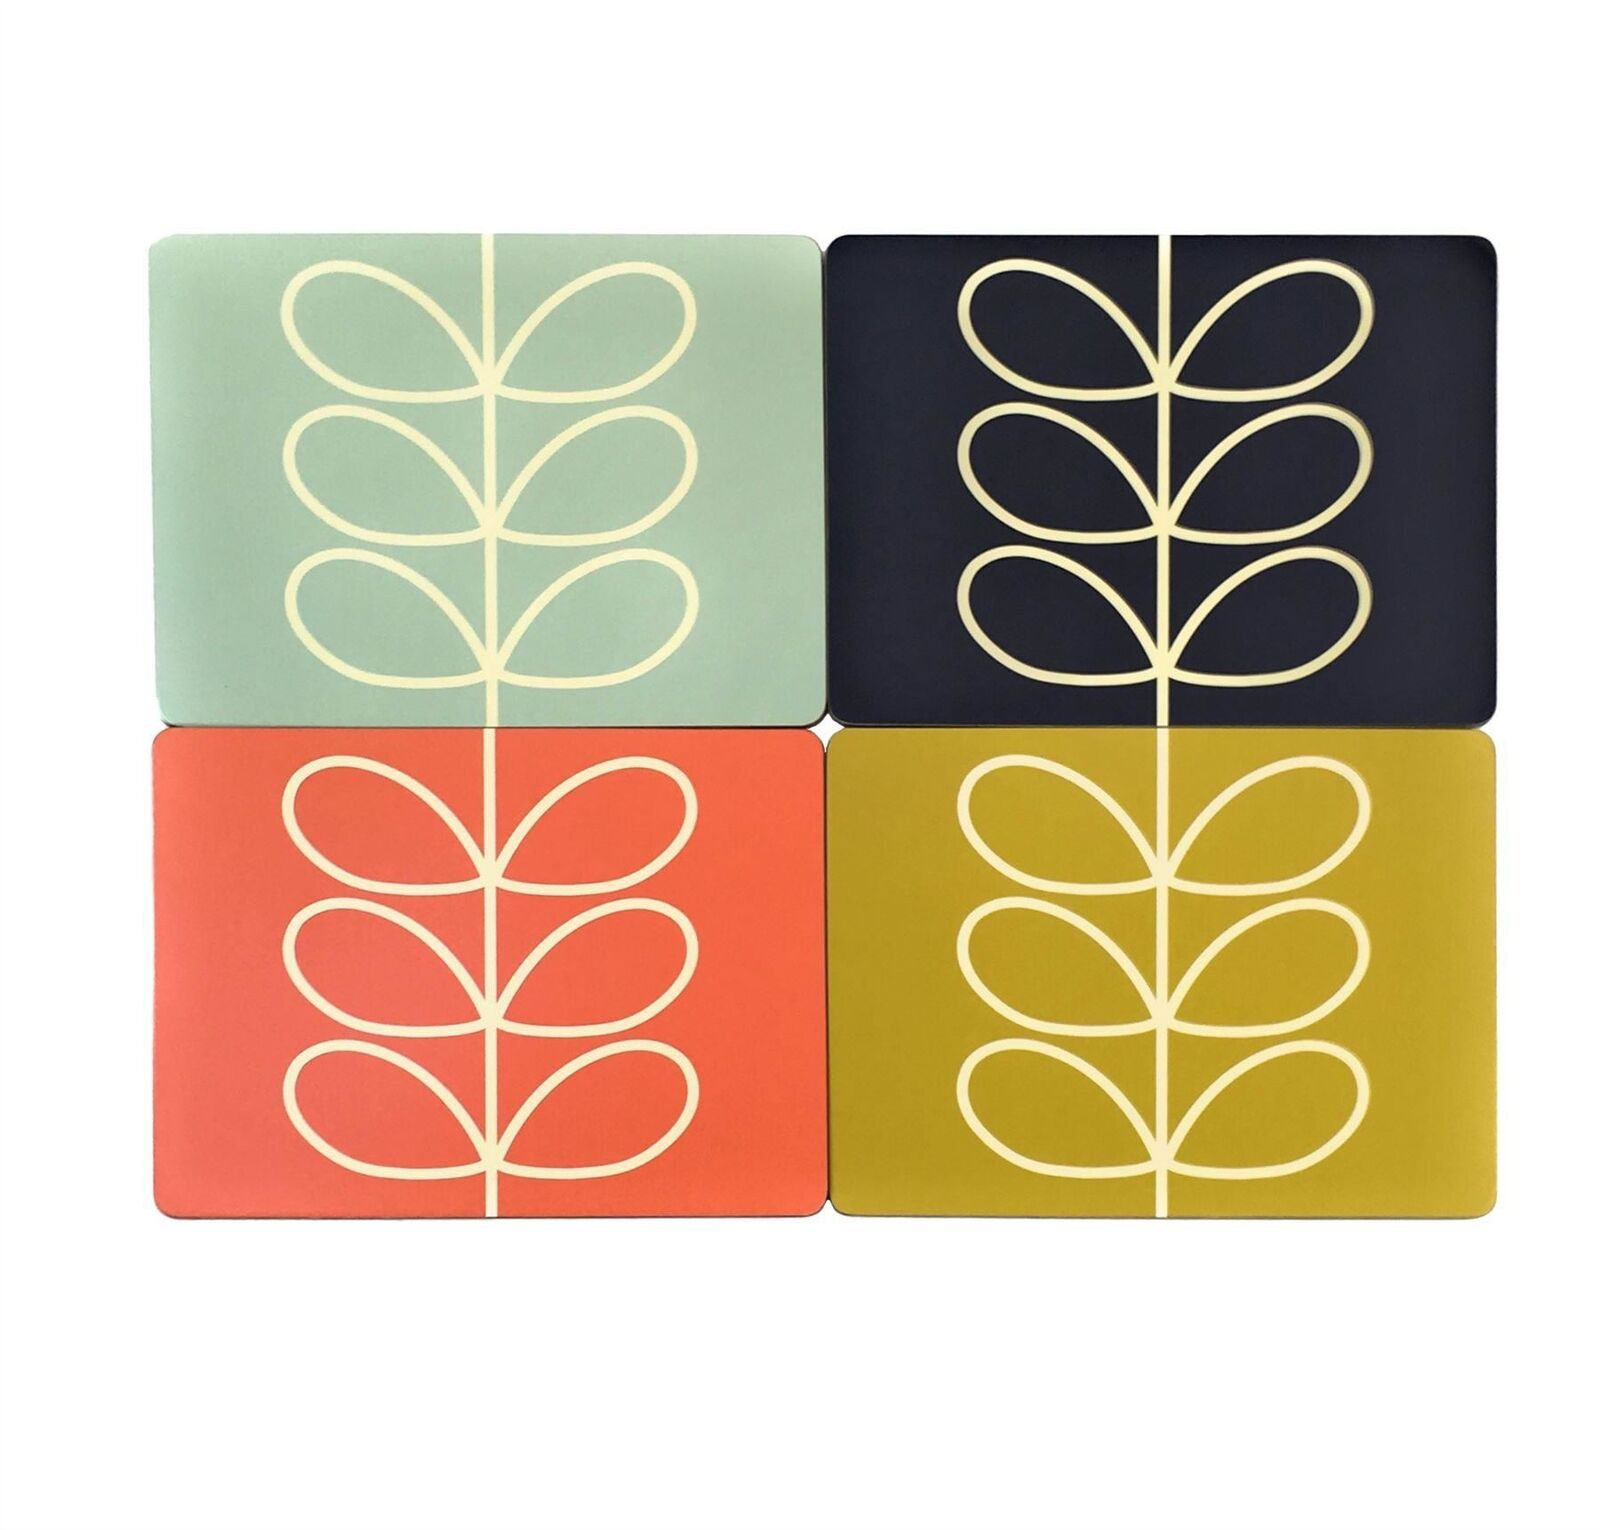 Licence Official Orla Kiely Tige Linéaire Feuille Set de Table